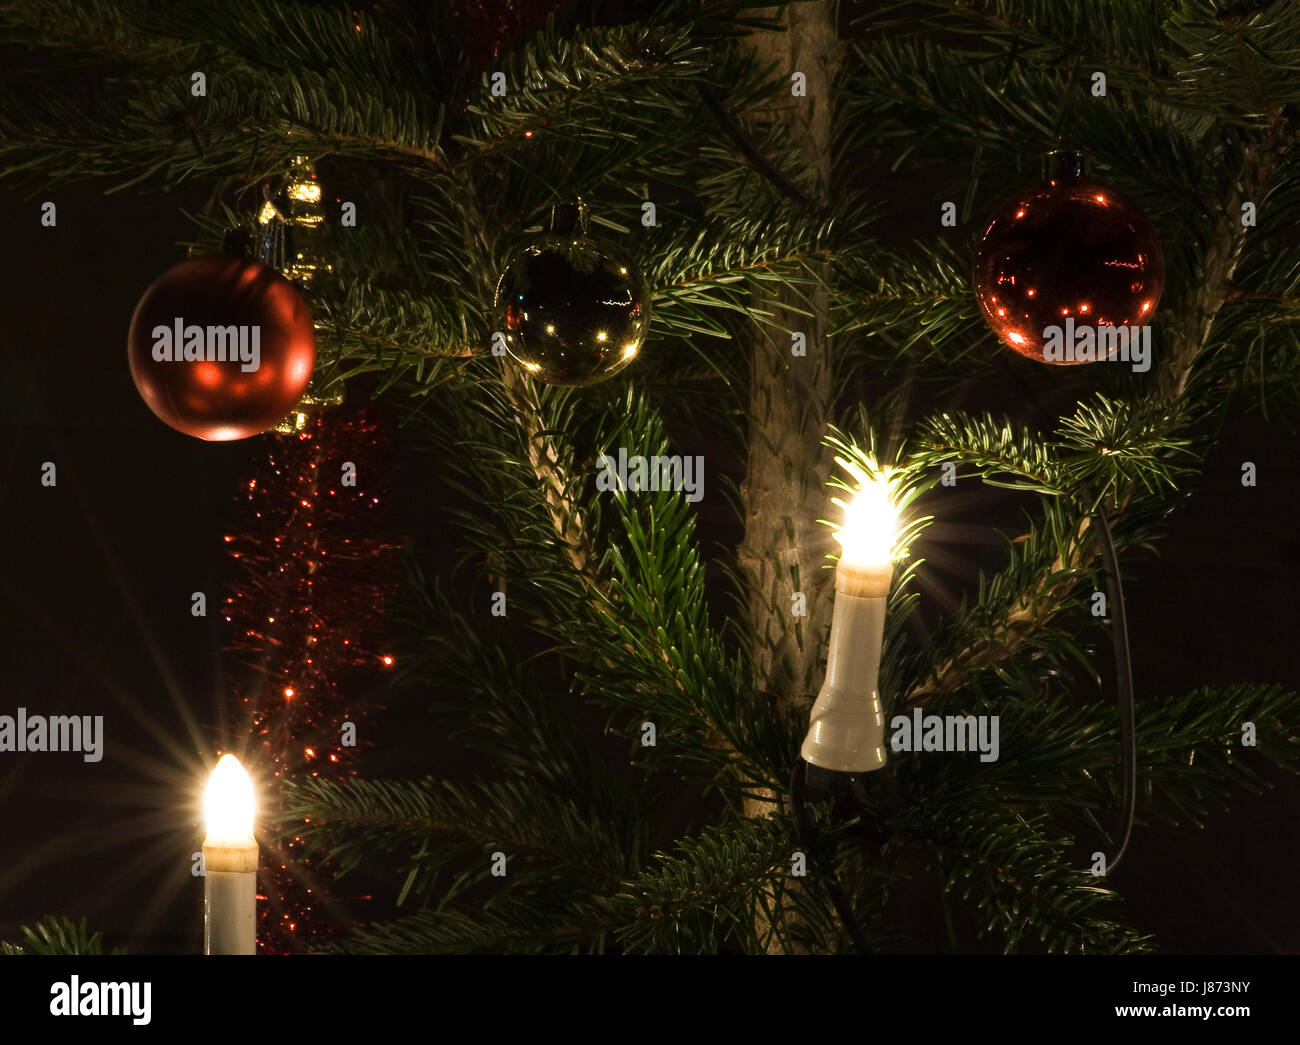 Solar Weihnachtsbeleuchtung Christmas Tree Christmas Tree Decorations Christmas Xmas X Mas